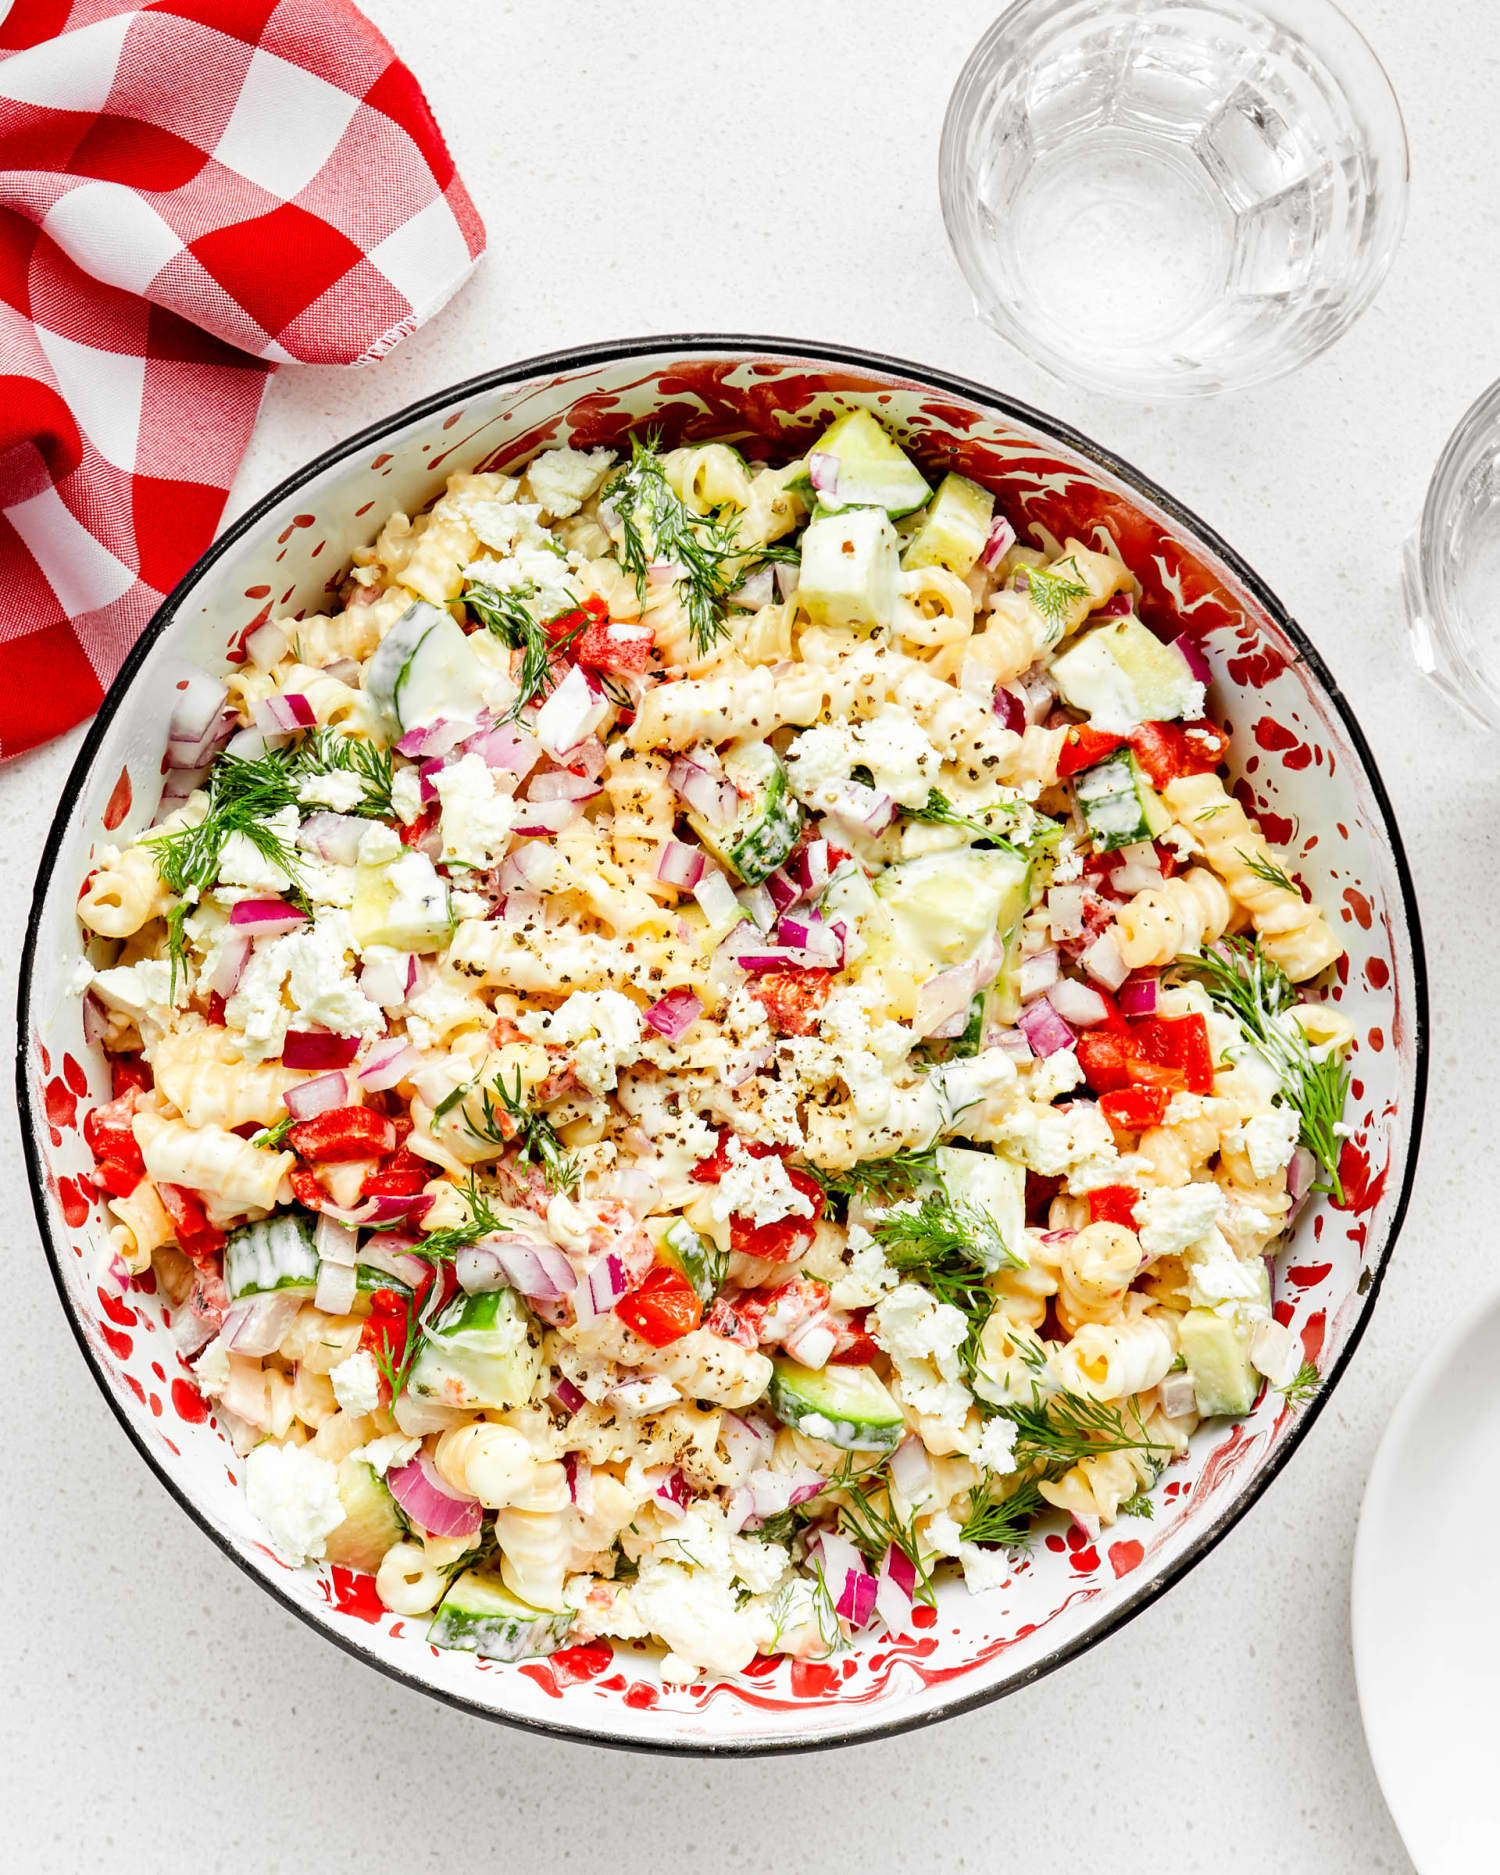 A Light and Lemony Pasta Salad for a Perfect Summer Day